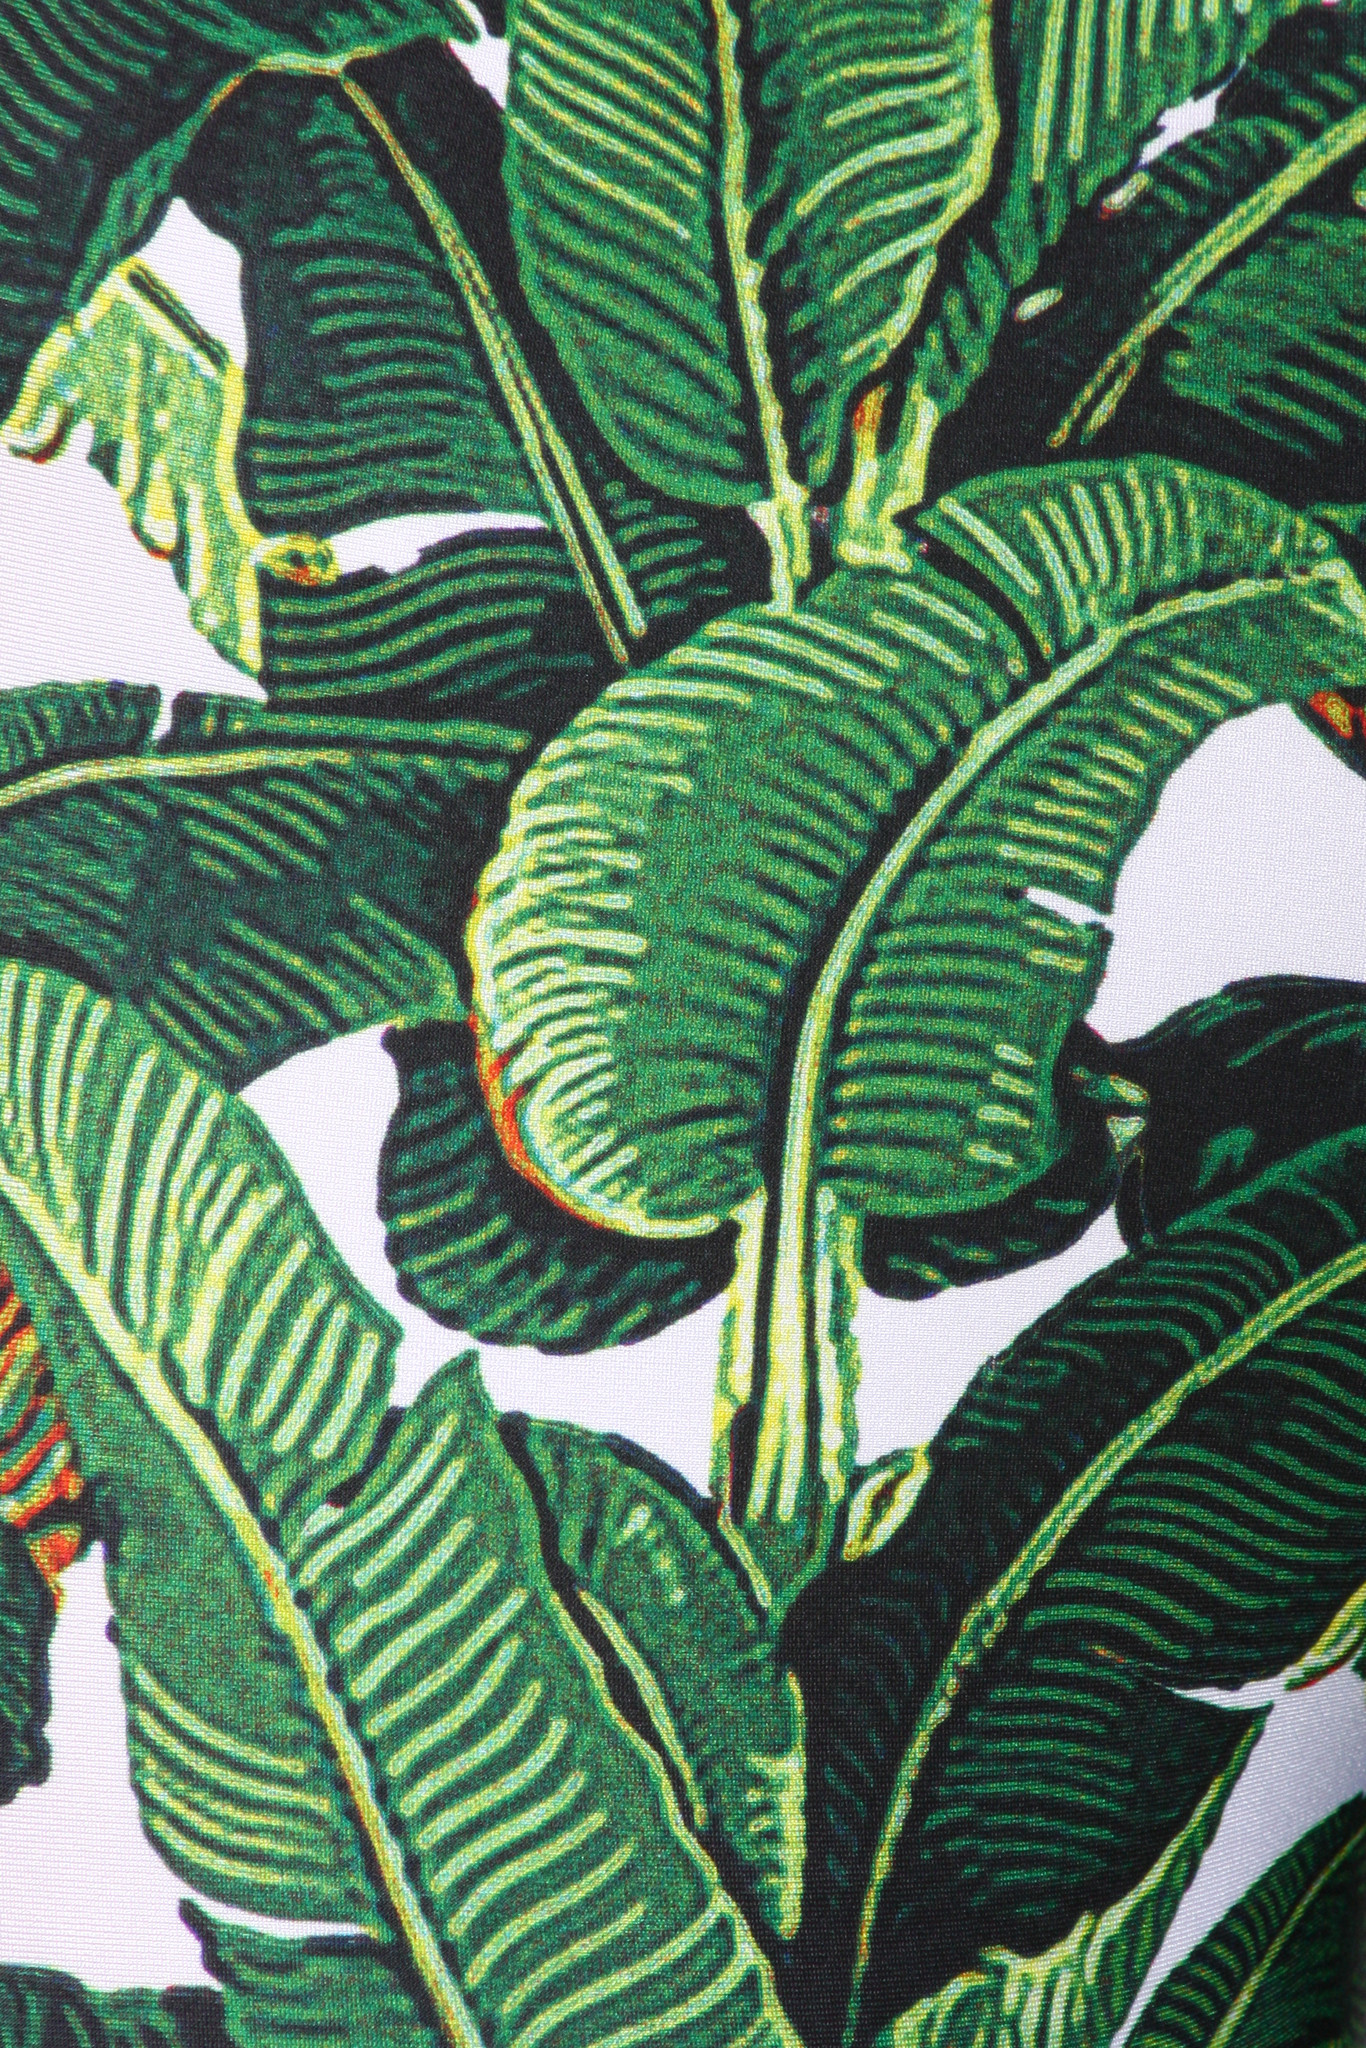 download beverly hills banana leaf wallpaper gallery